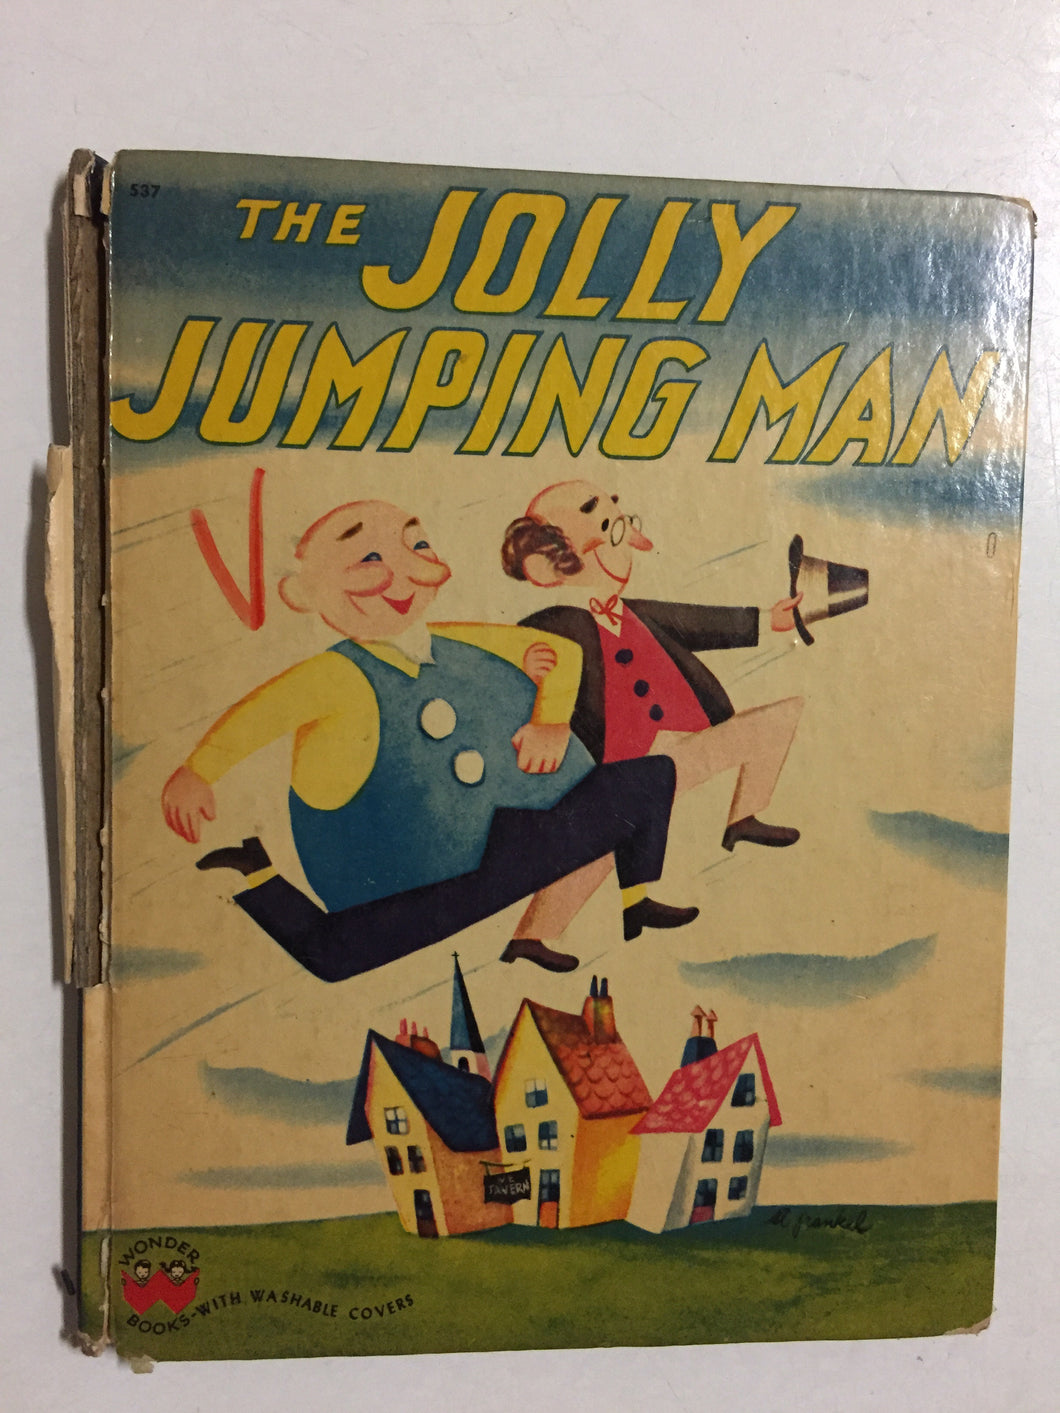 The Jolly Jumping Man- Slick Cat Books